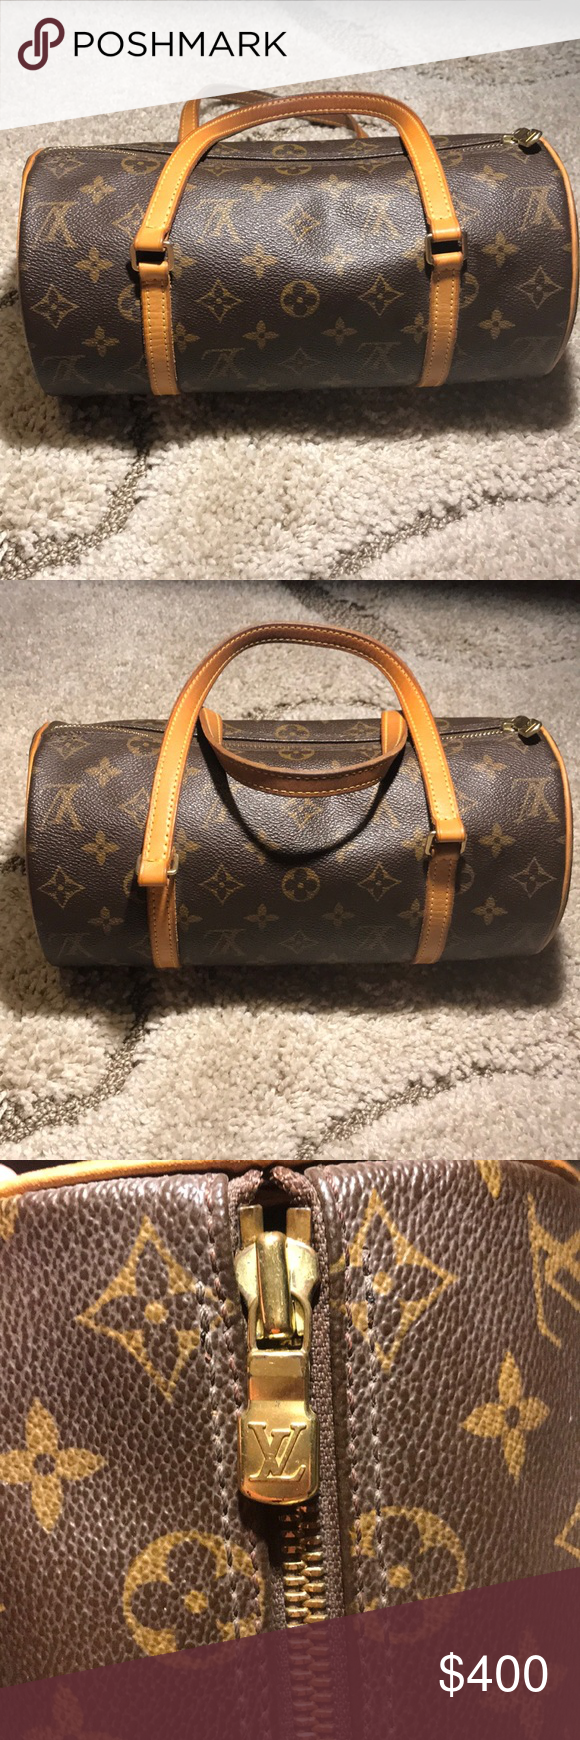 Louis Vuitton Papillon Purse ? • ? Authentic Louis Vuitton Purse ?  ... Louis Vuitton Papillon Purse ? • ? Authentic Louis Vuitton Purse ?  • 11x4x5 A True Classic LV  • Great Condition with a few scuffs on one side (picture included)  • Code is shown in picture Louis Vuitton Bags Shoulder Bags  #Vuitton #Papillon #Purse #? #•